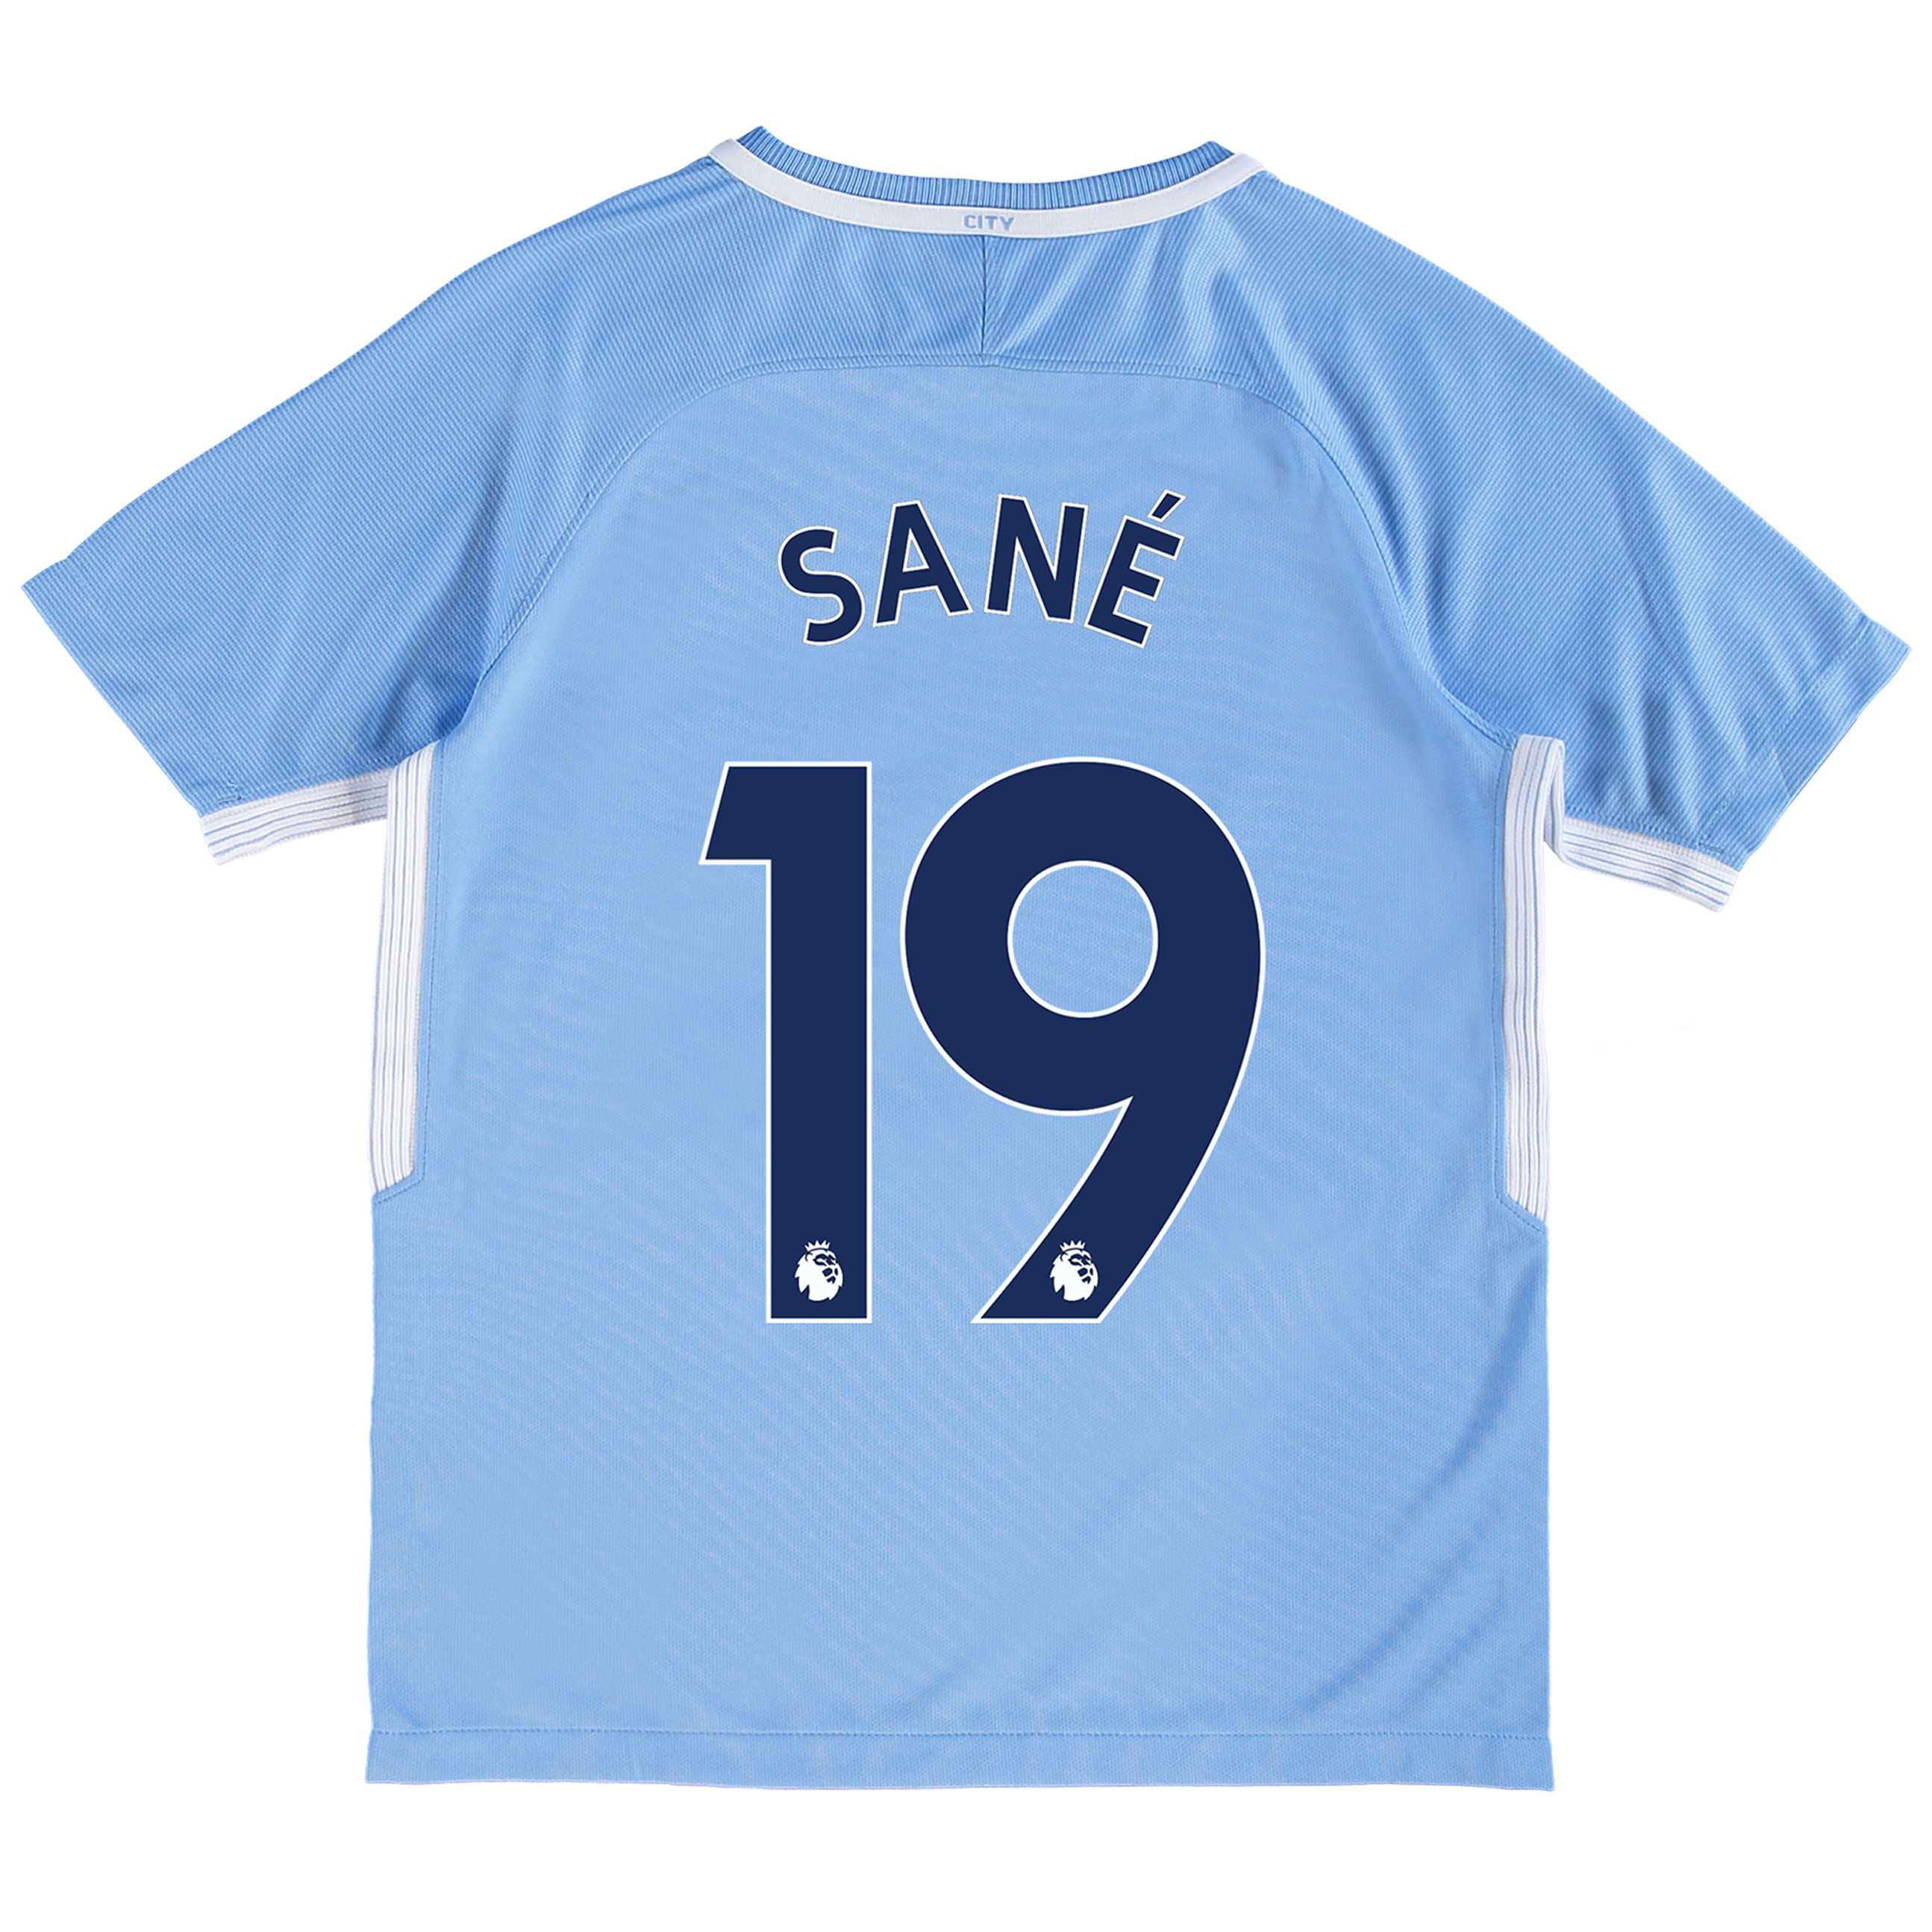 Manchester City Home Stadium Shirt 2017-18 - Kids with San?® 19 printin